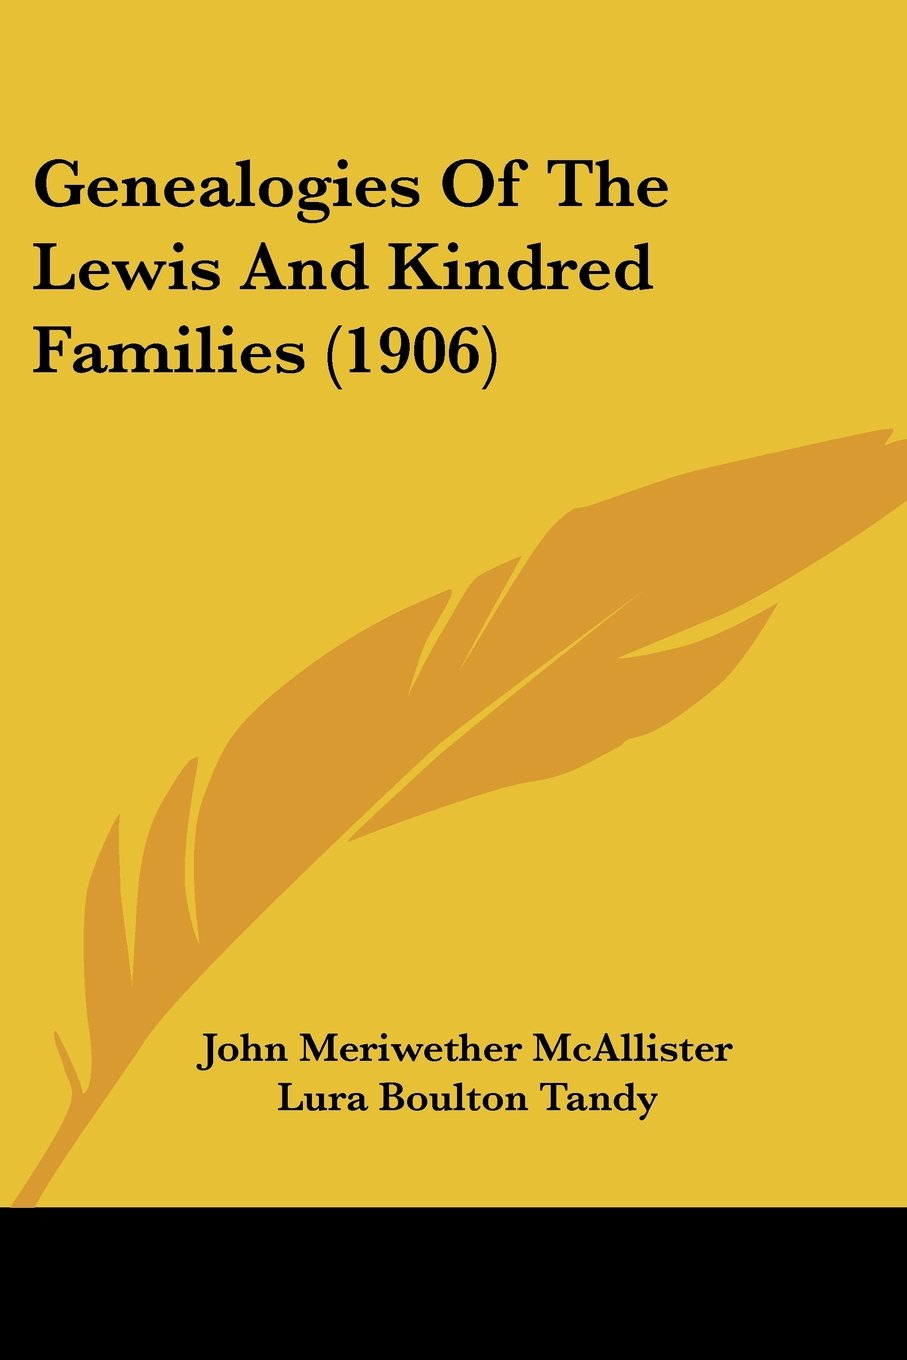 Genealogies Of The Lewis And Kindred Families (1906): John Meriwether  McAllister, Lura Boulton Tandy: 9781436856454: Amazon.com: Books